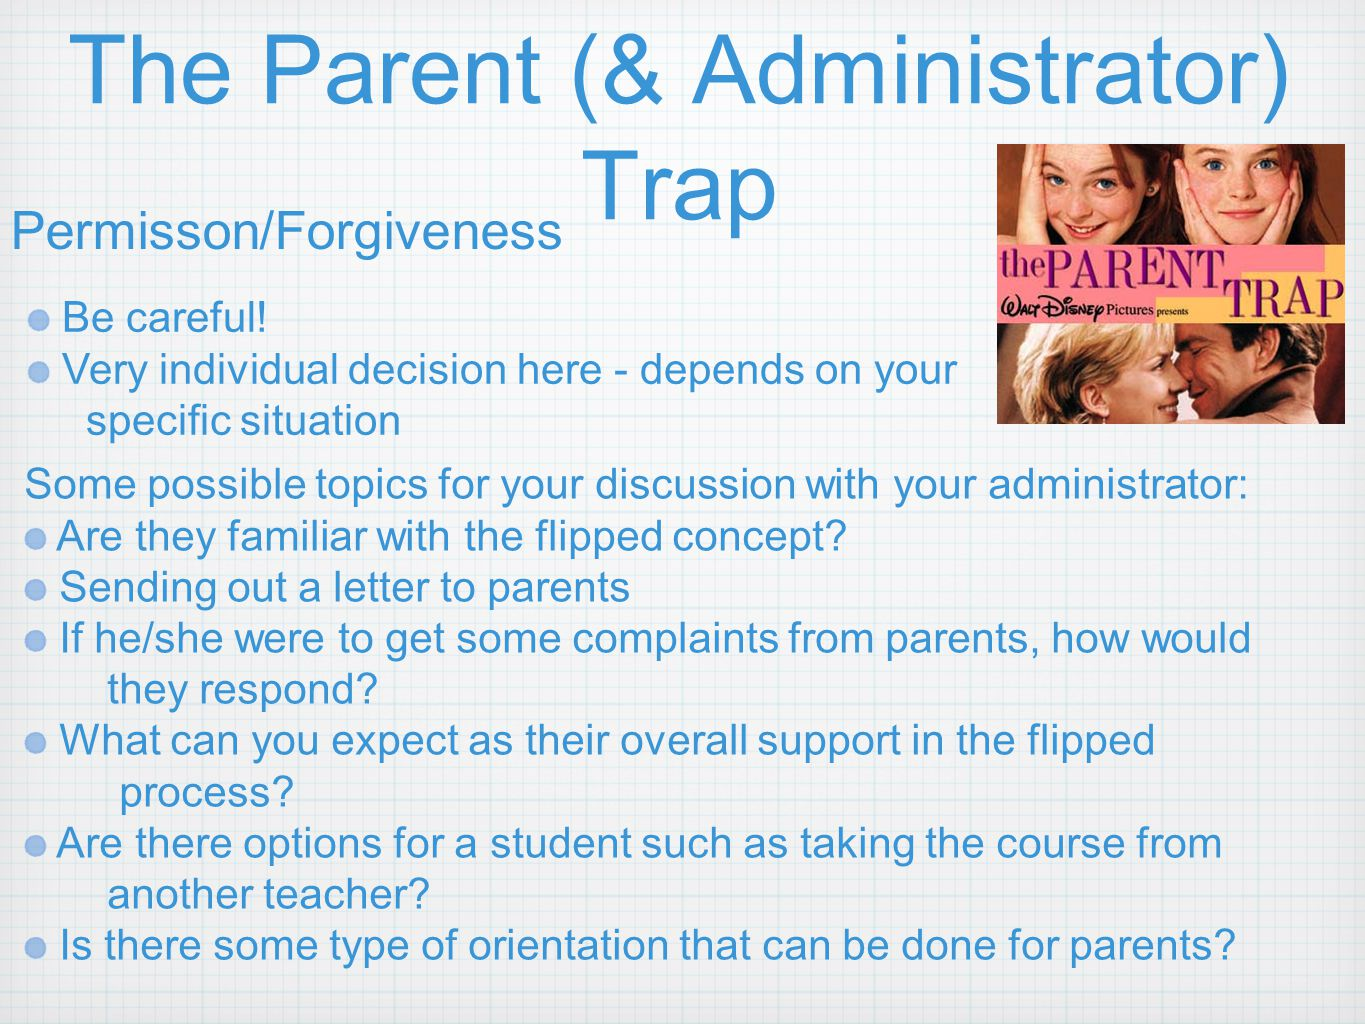 The Parent (& Administrator) Trap Be careful! Very individual decision here - depends on your specific situation Some possible topics for your discuss